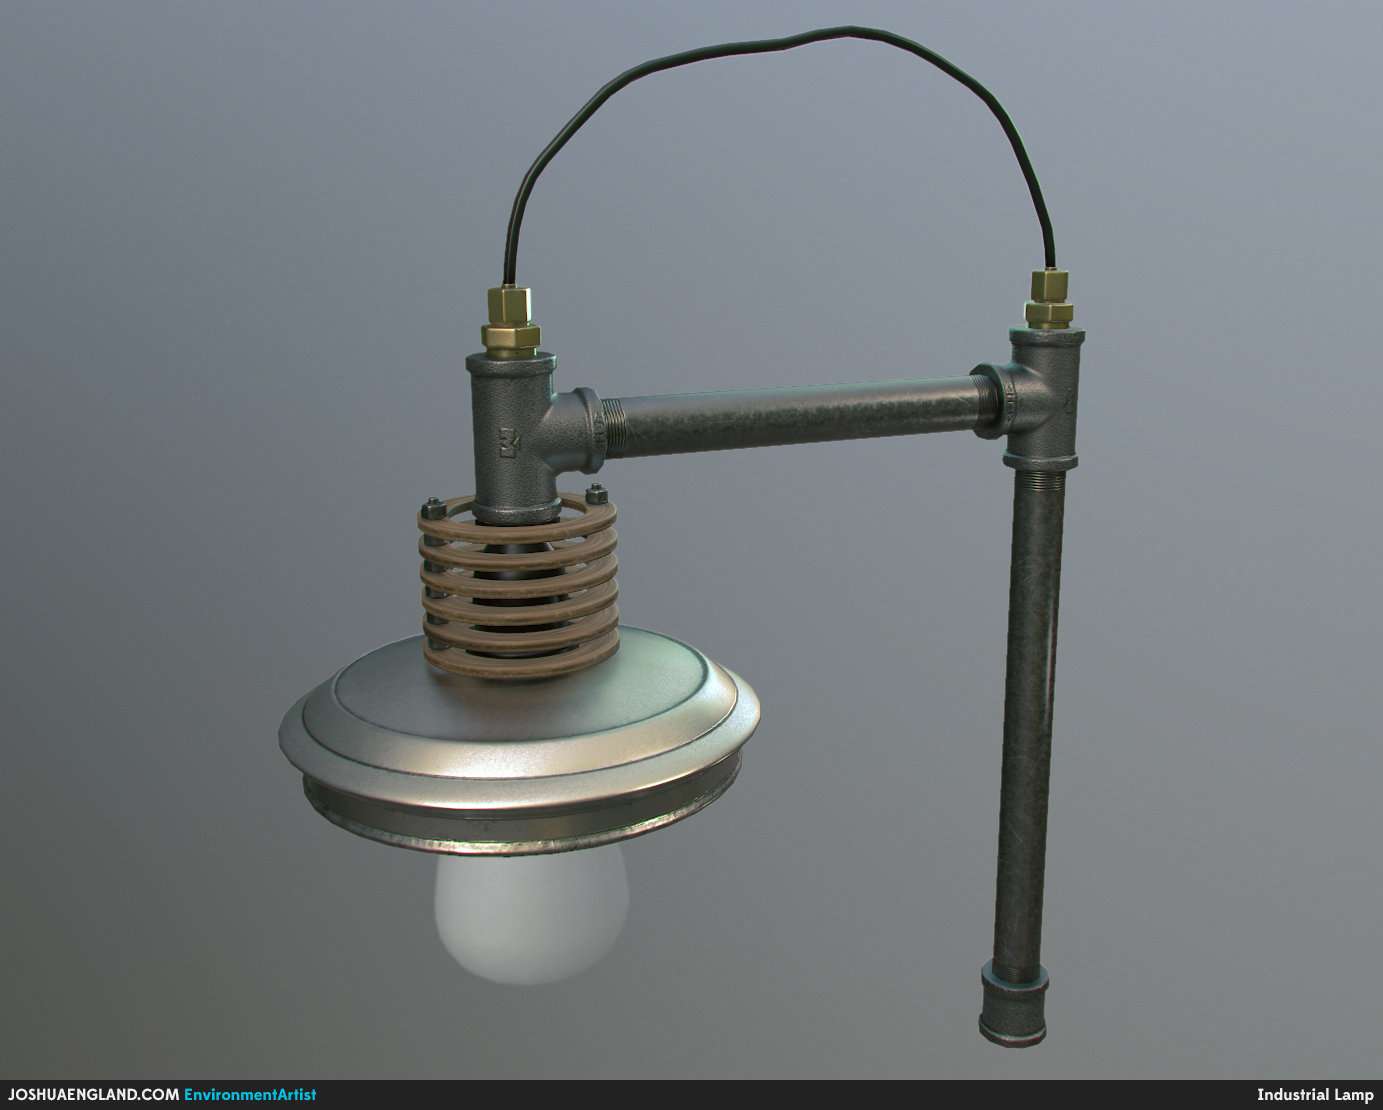 Joshua england industrial lamp front